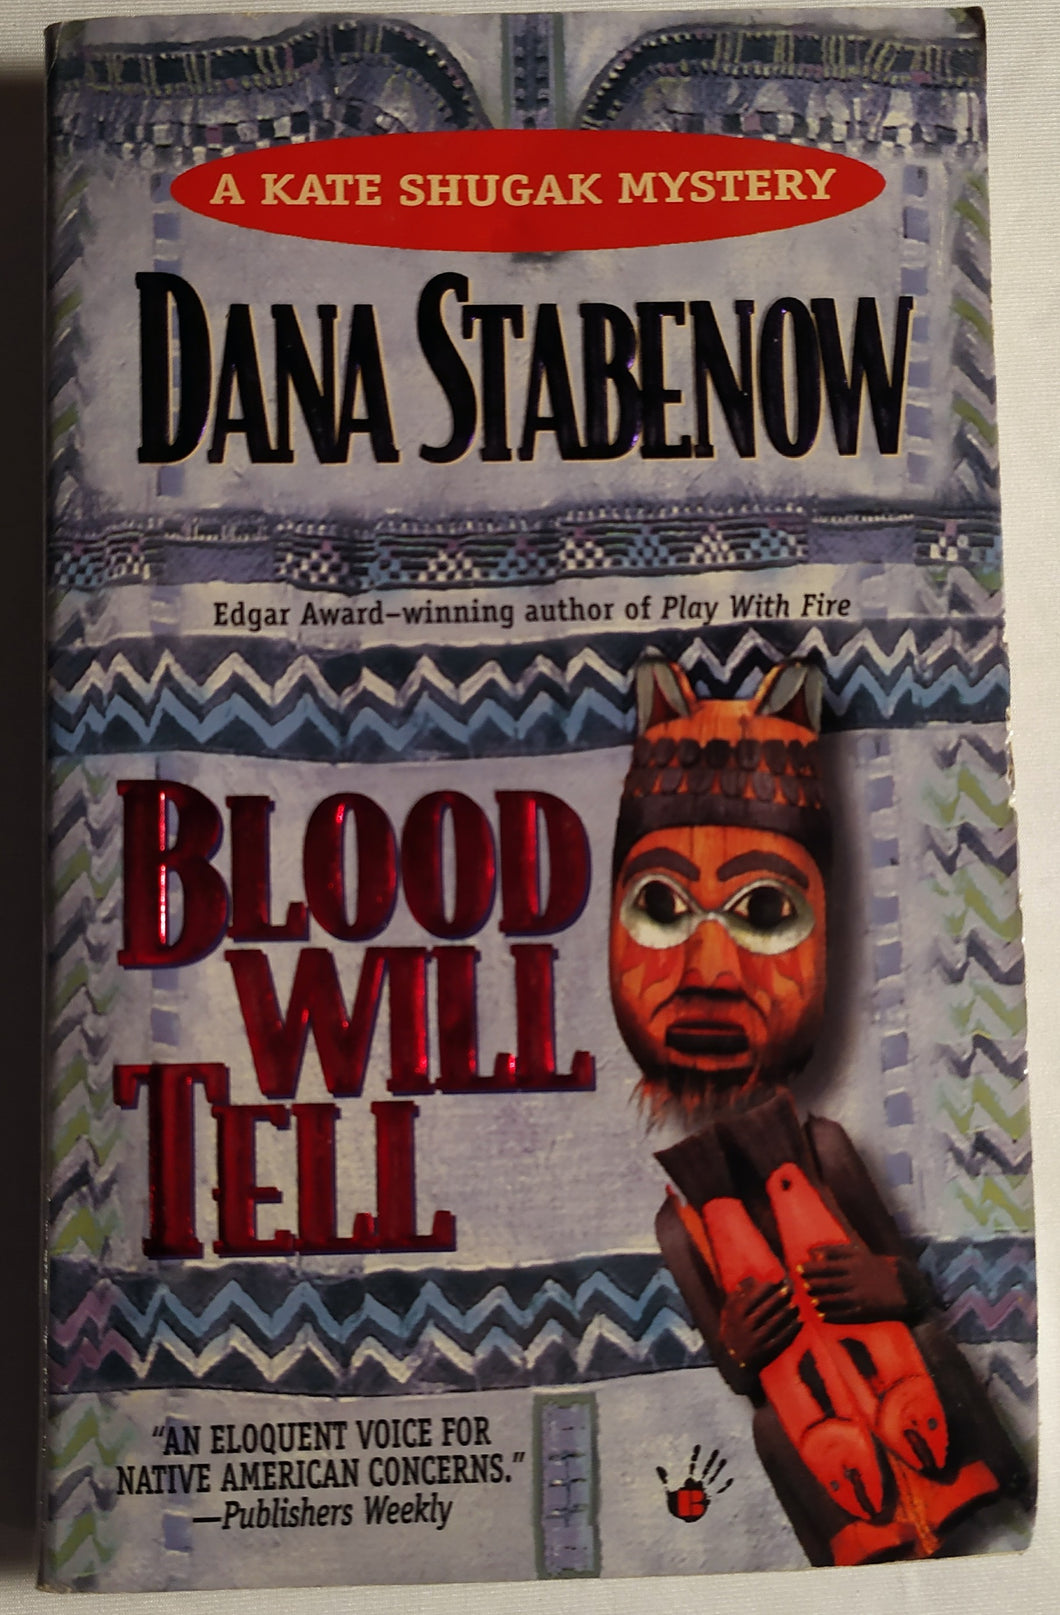 Blood Will Tell (A Kate Shugak Mystery) by Dana Stabenow